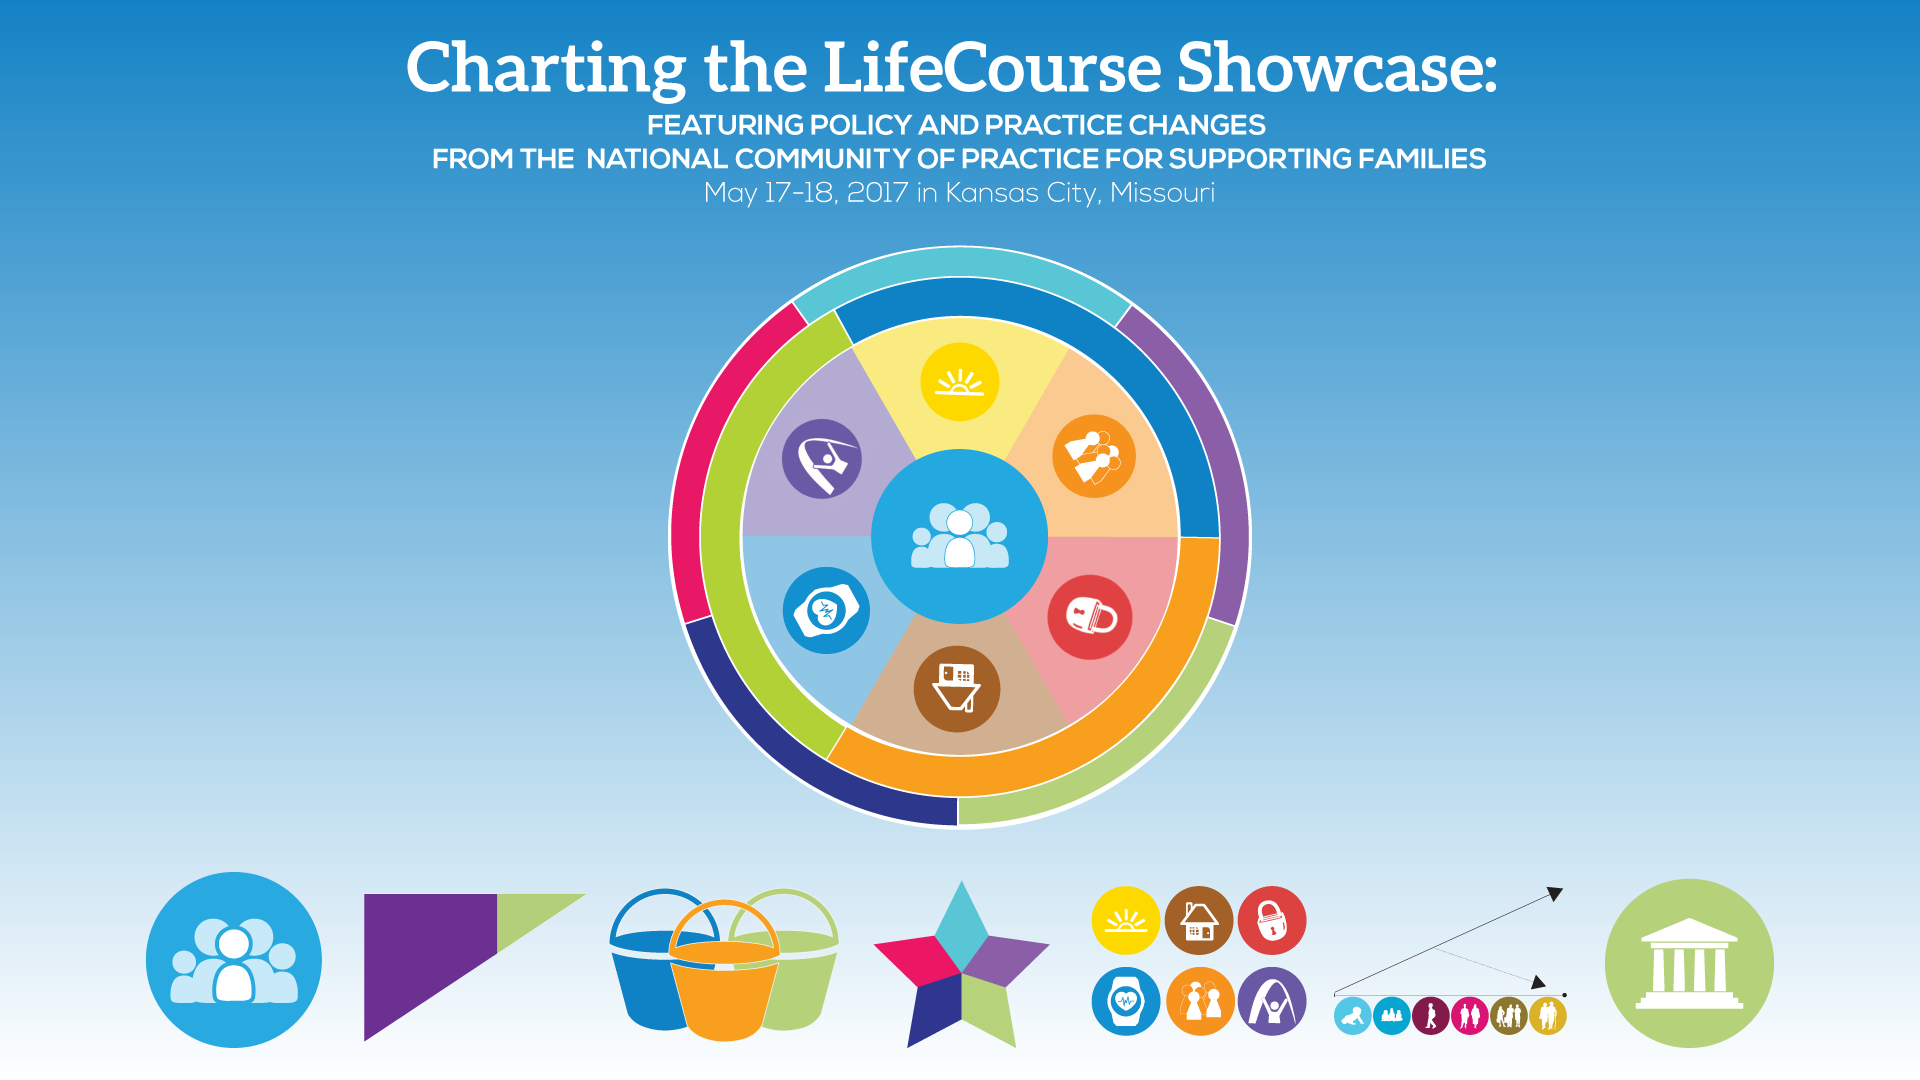 Graphic: Charting the LifeCourse Showcase May 17-18, 2017 in Kansas City, MO - LifeCourse Circle large in center of a blue to white gradient box with the LifeCourse principles lined up in a row at the bottom of the box